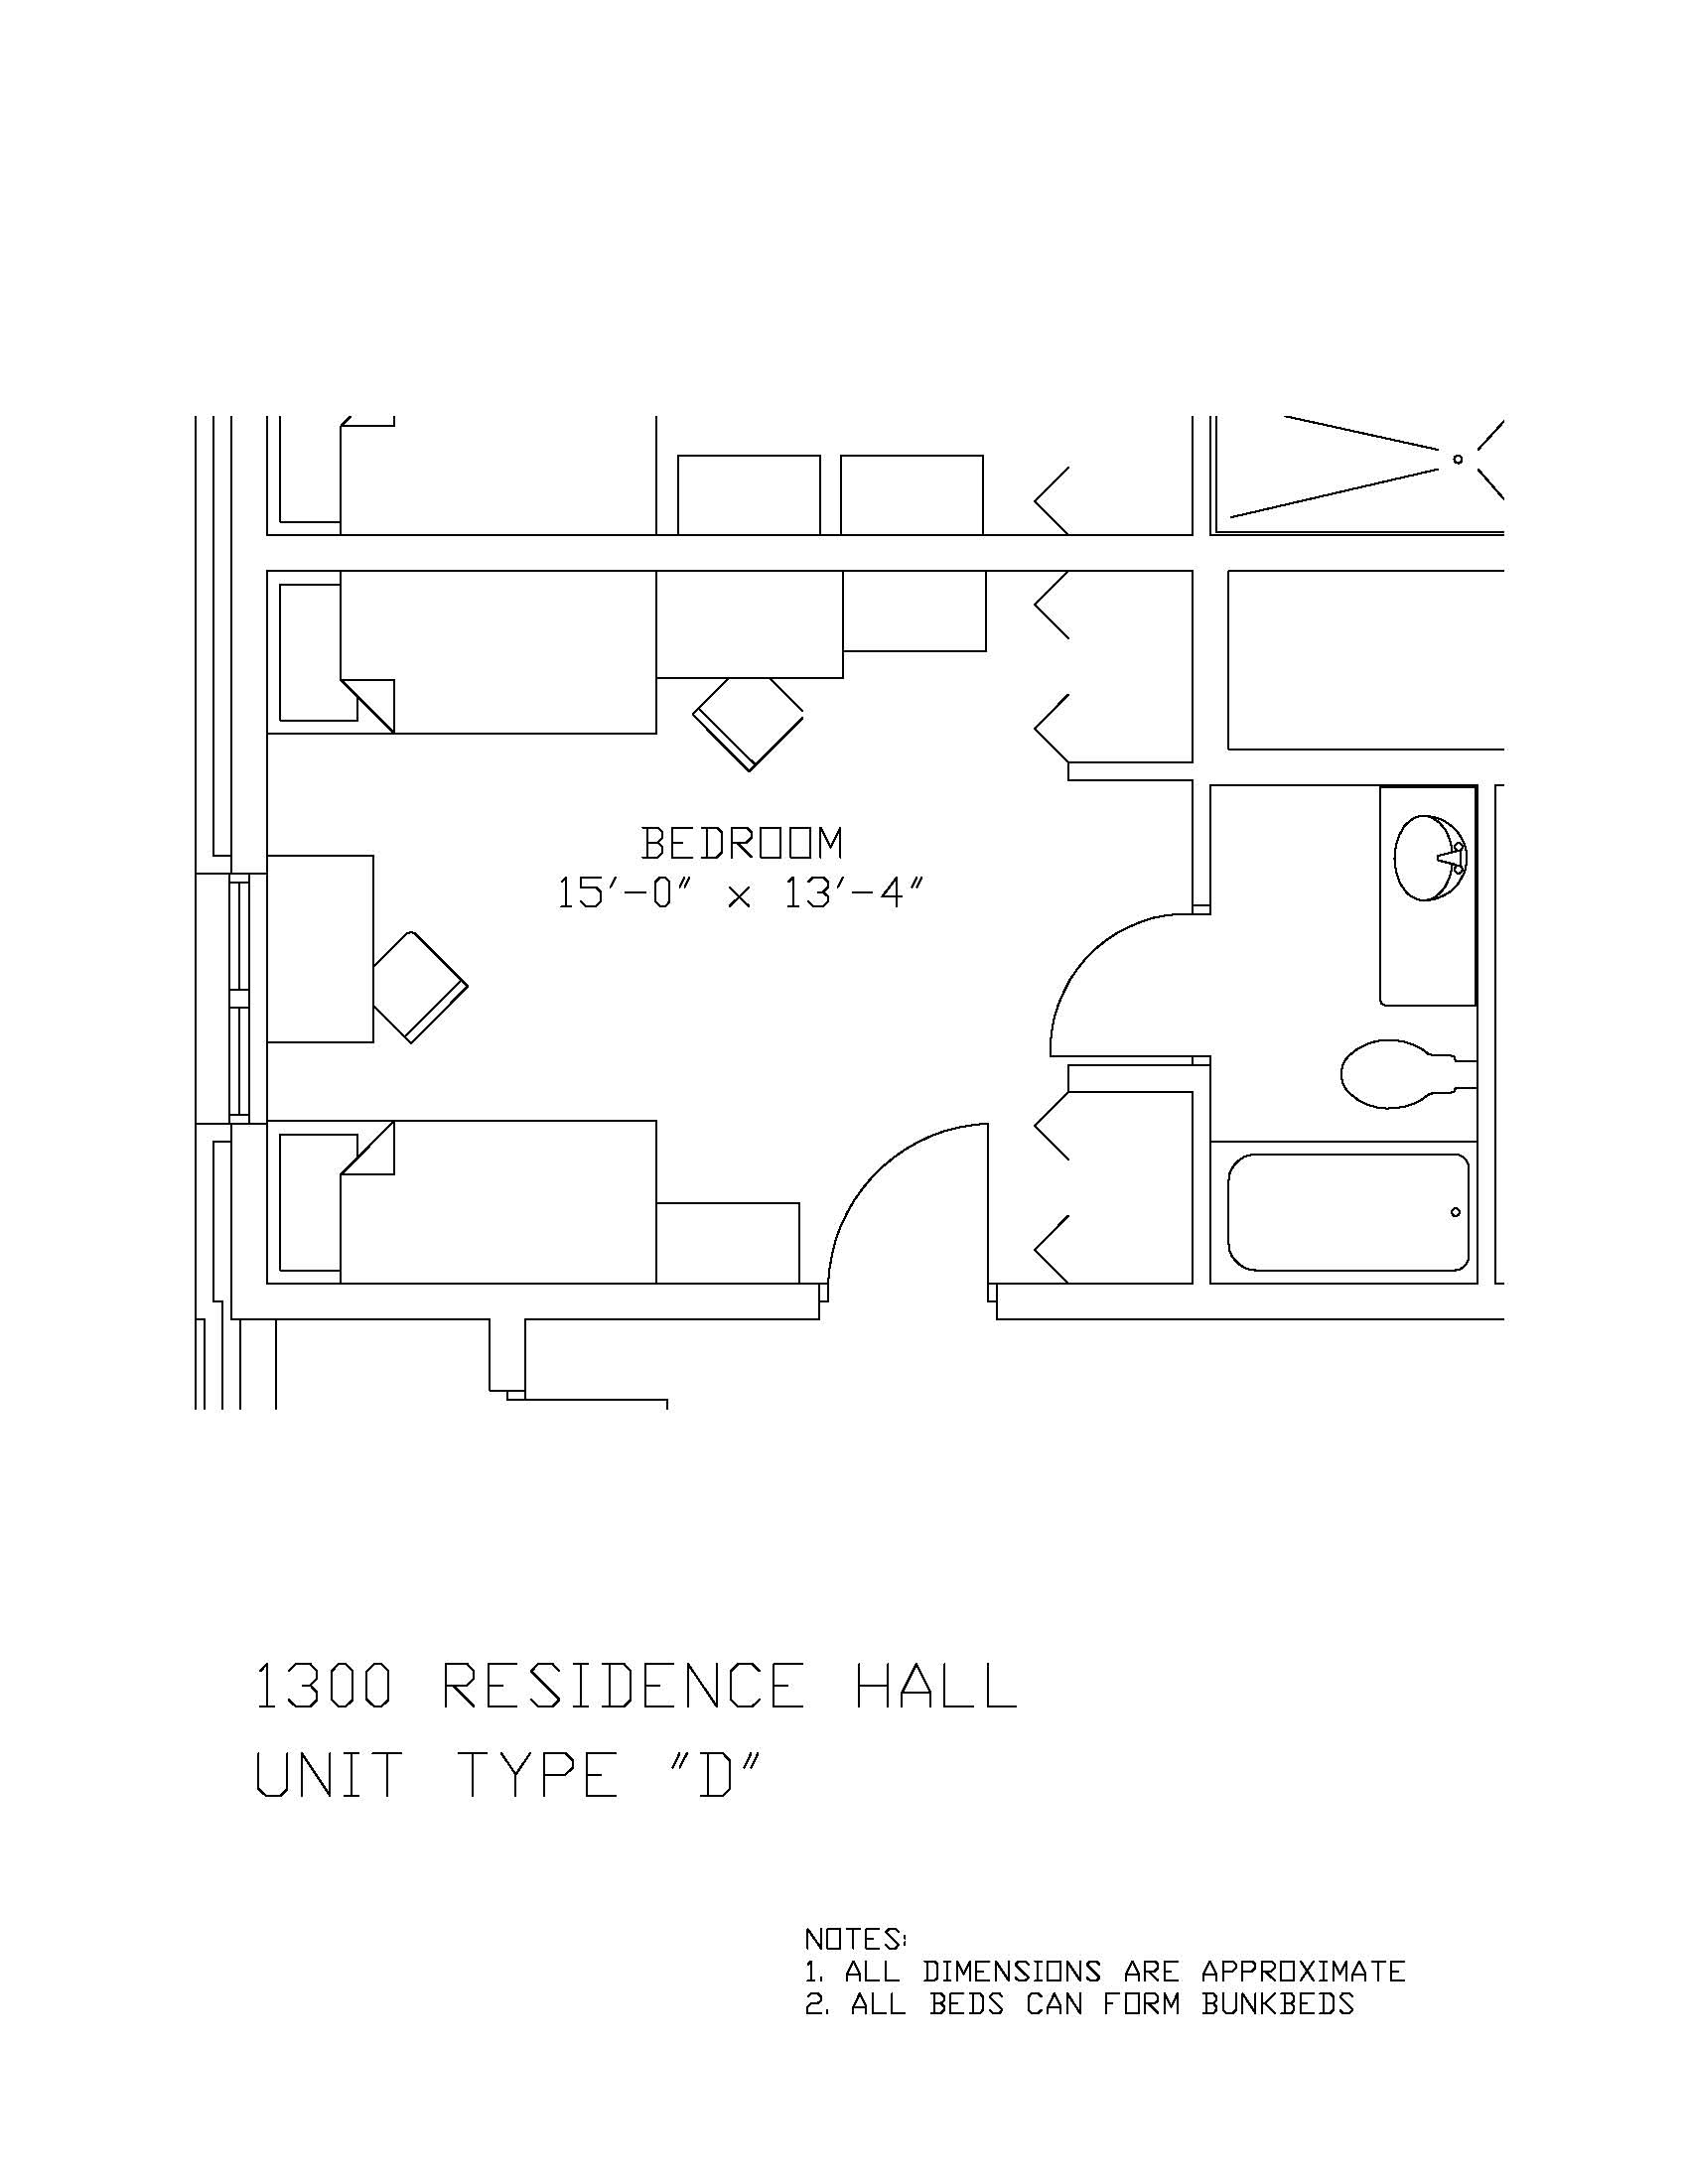 1300 Residence Hall: Type D